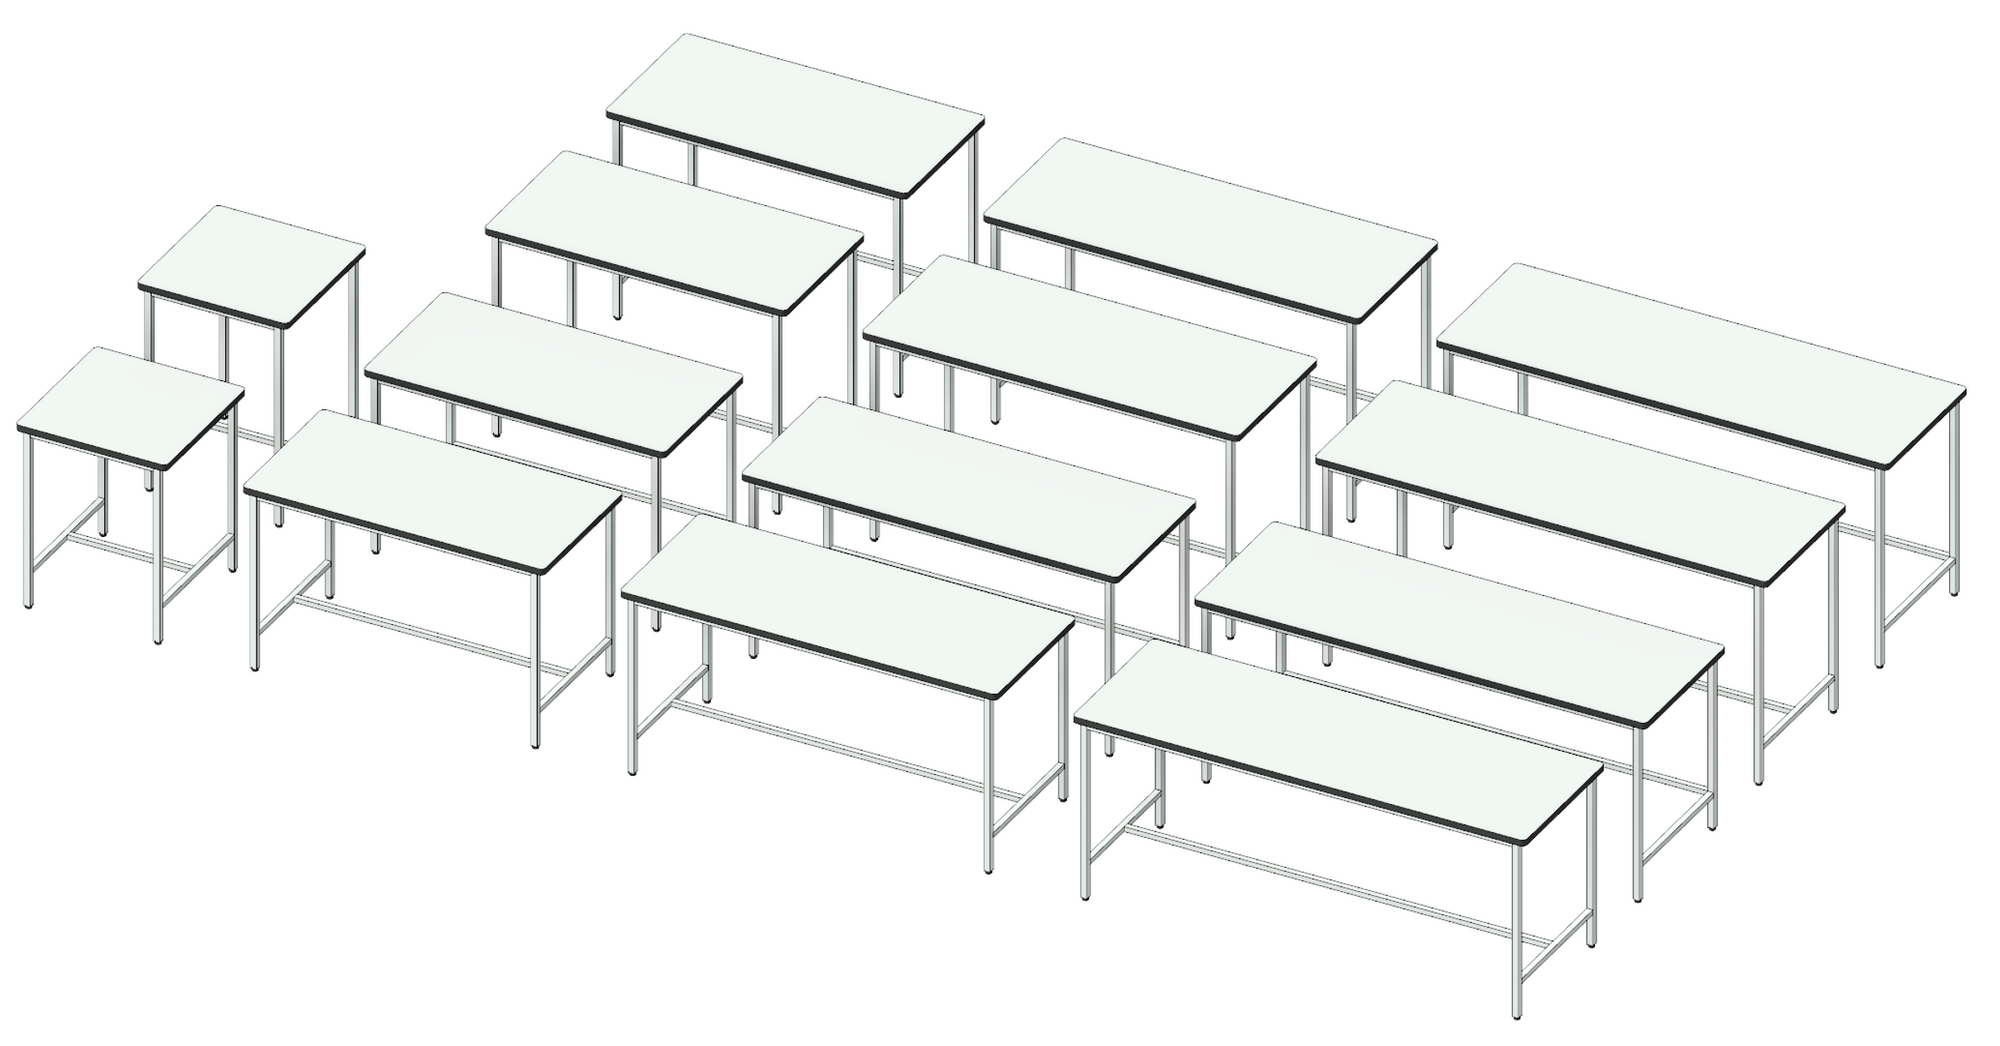 3D image showing white table top variations for H-frame table Revit family.